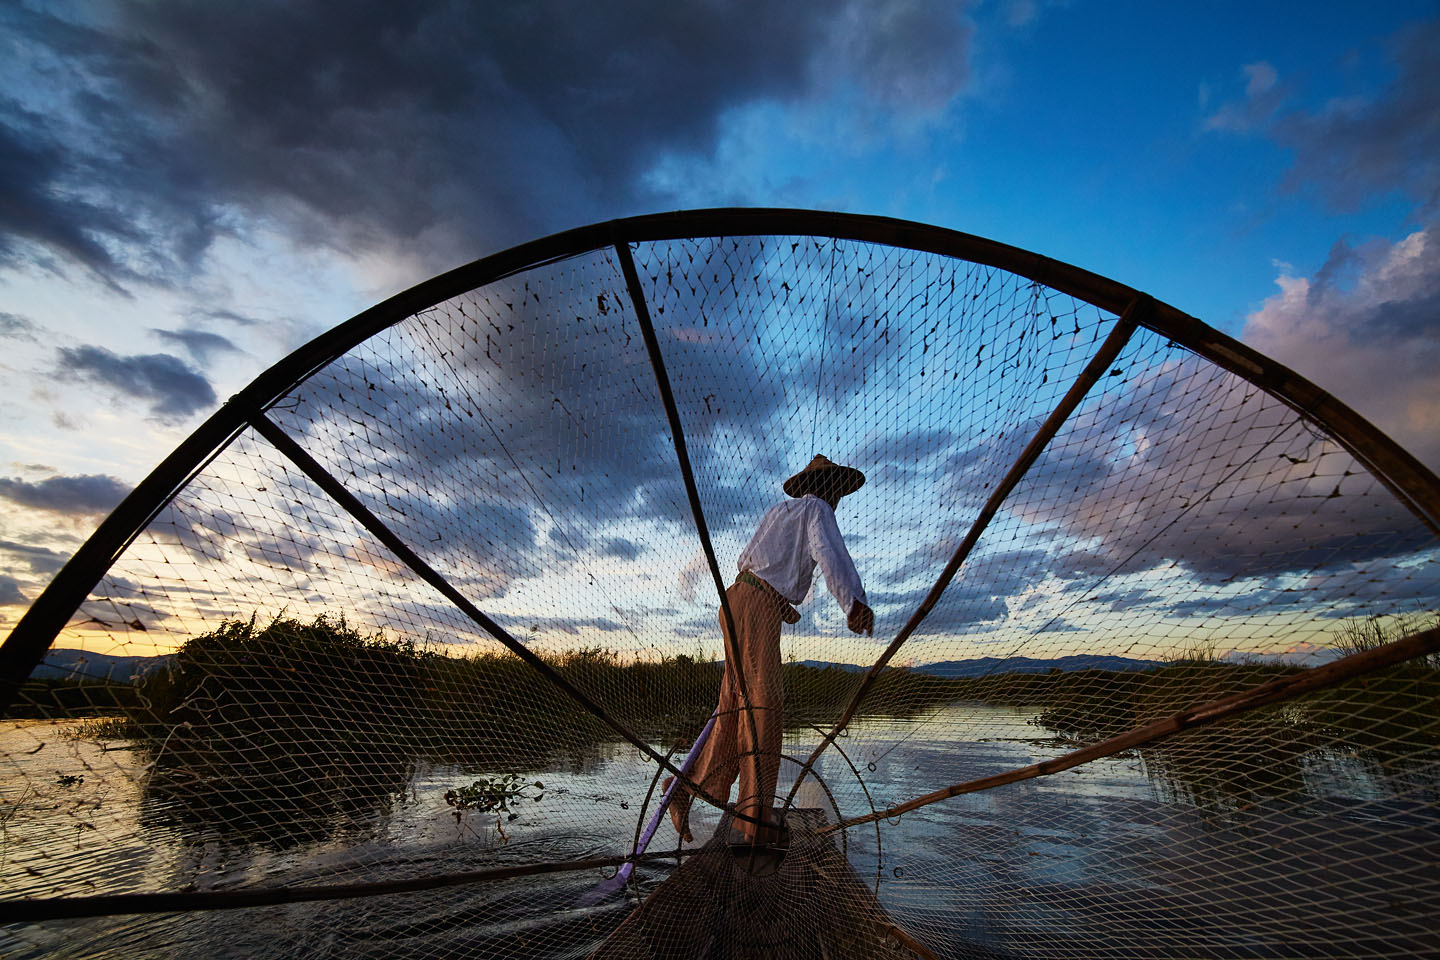 On a boat for sunset at Inle lake